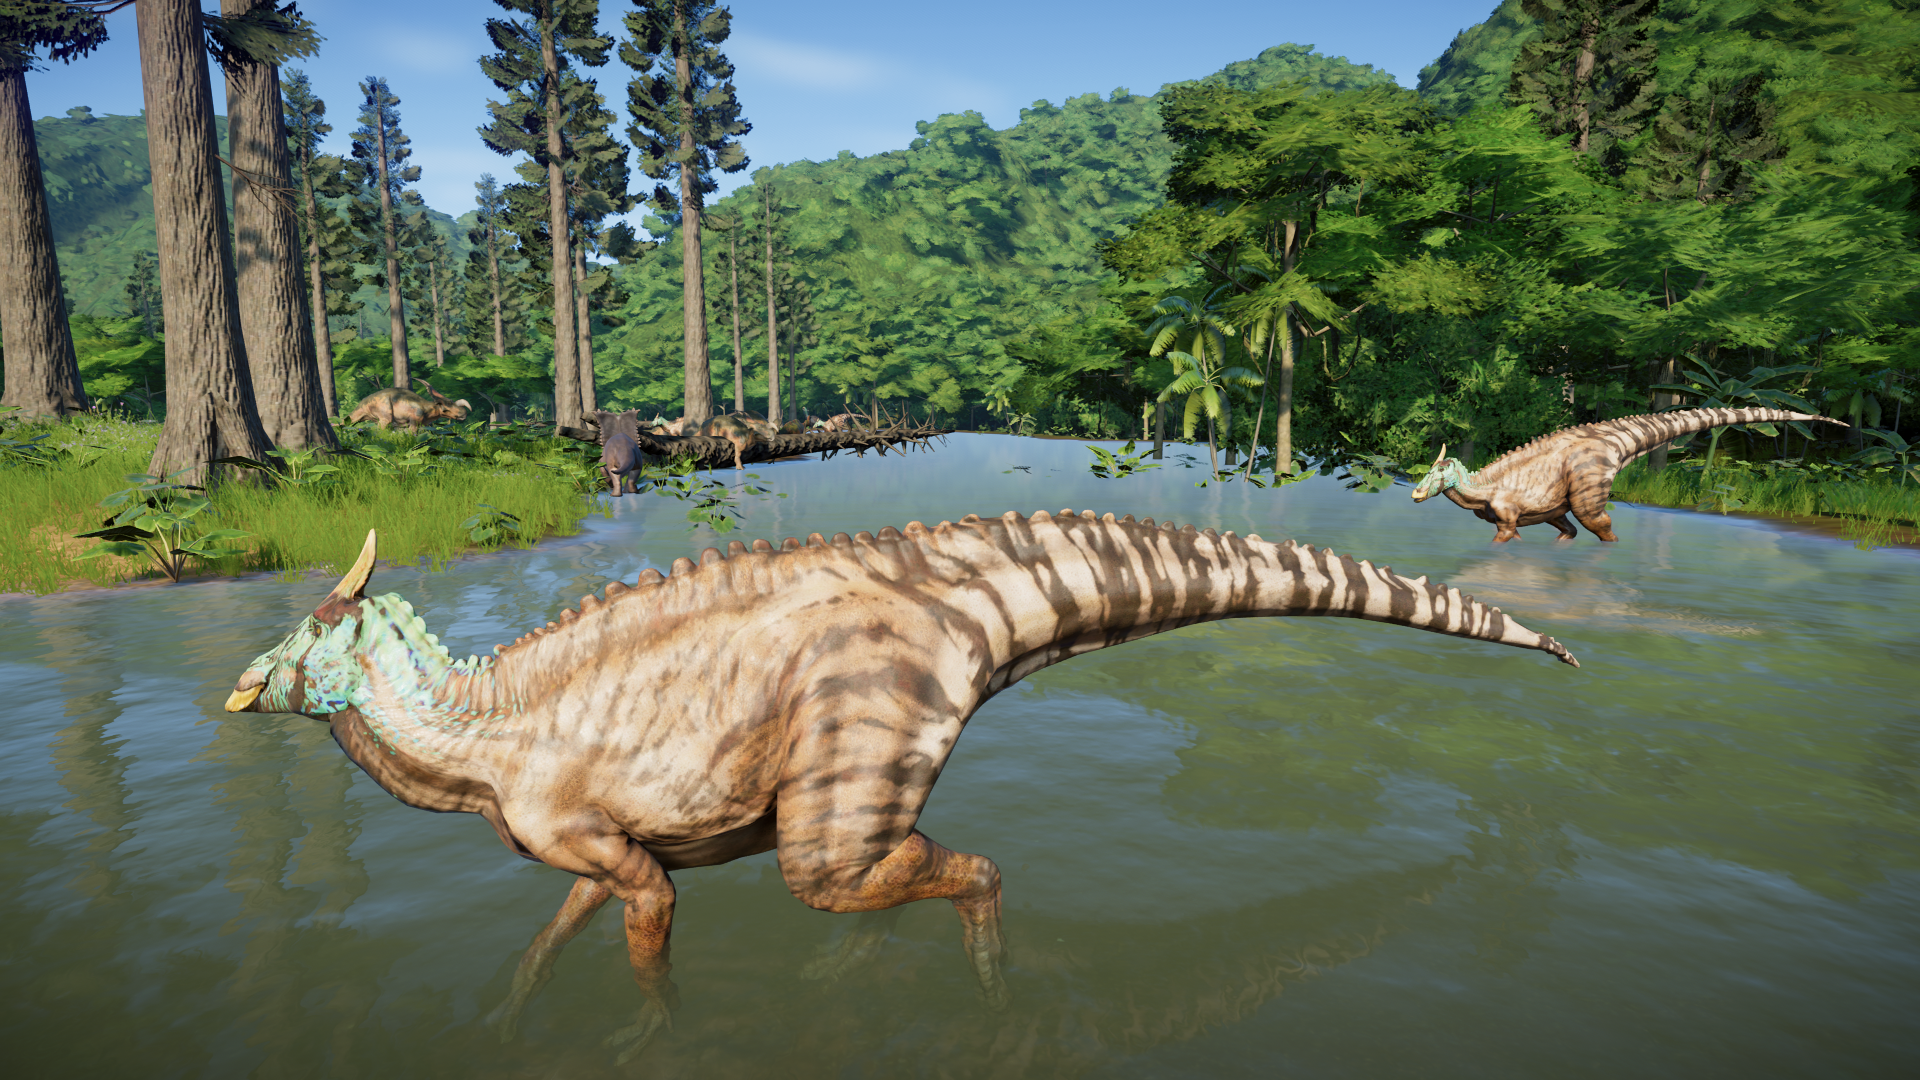 Jurassic World Evolution Mod Peatix Complete edition for nintendo switch includes all three major narrative. peatix